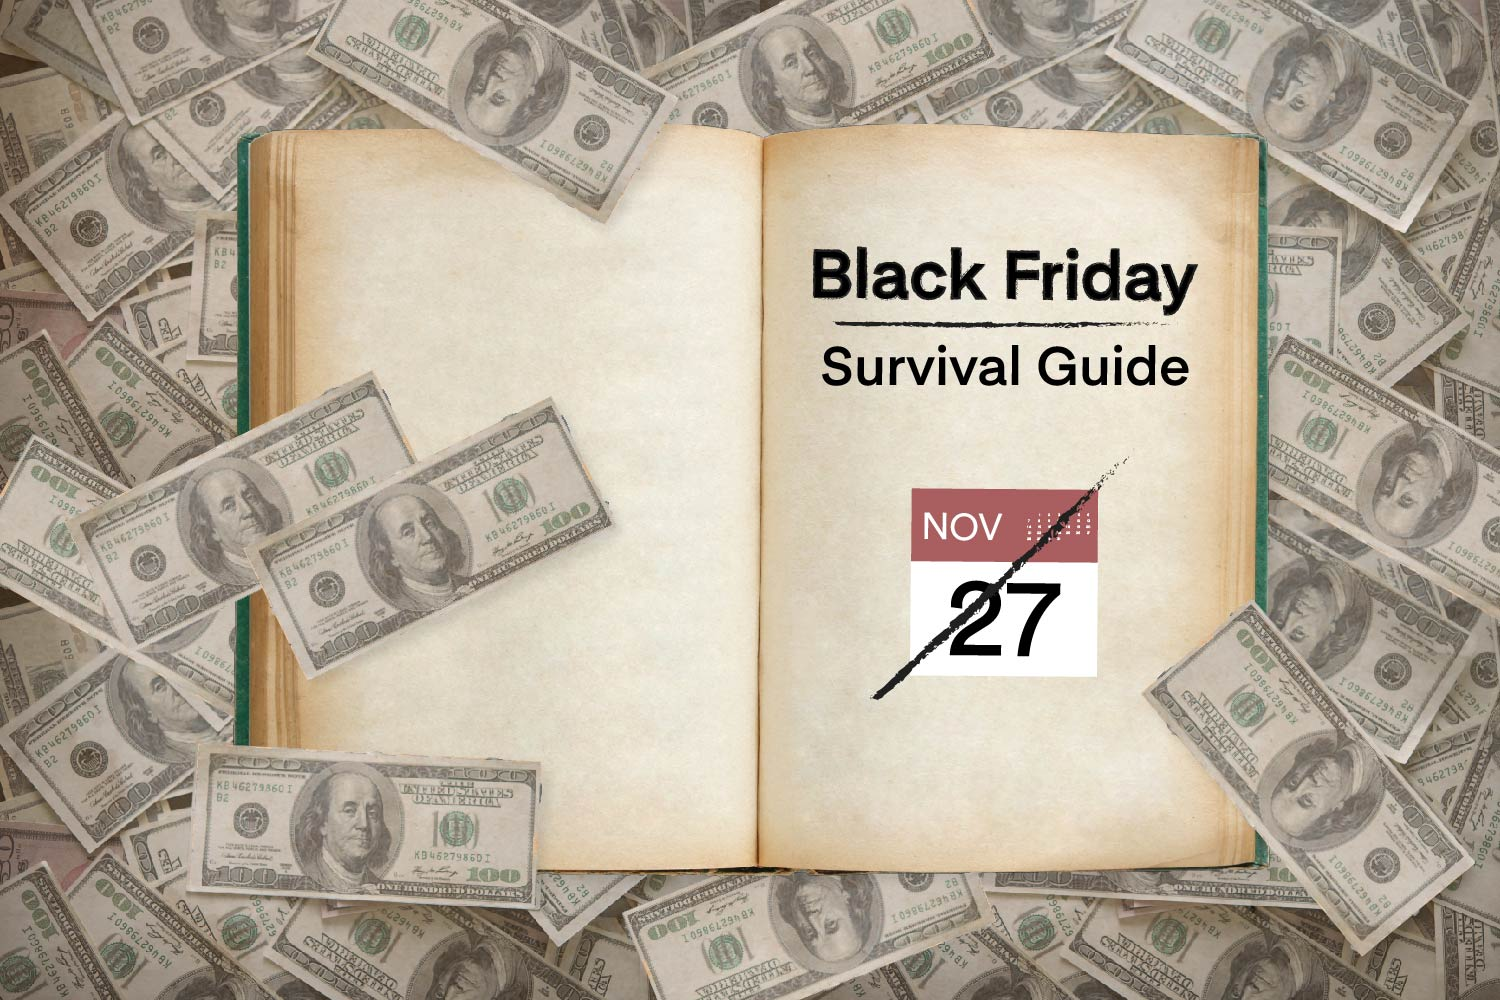 Black Friday 2020 survival guide: How to resist spending ...